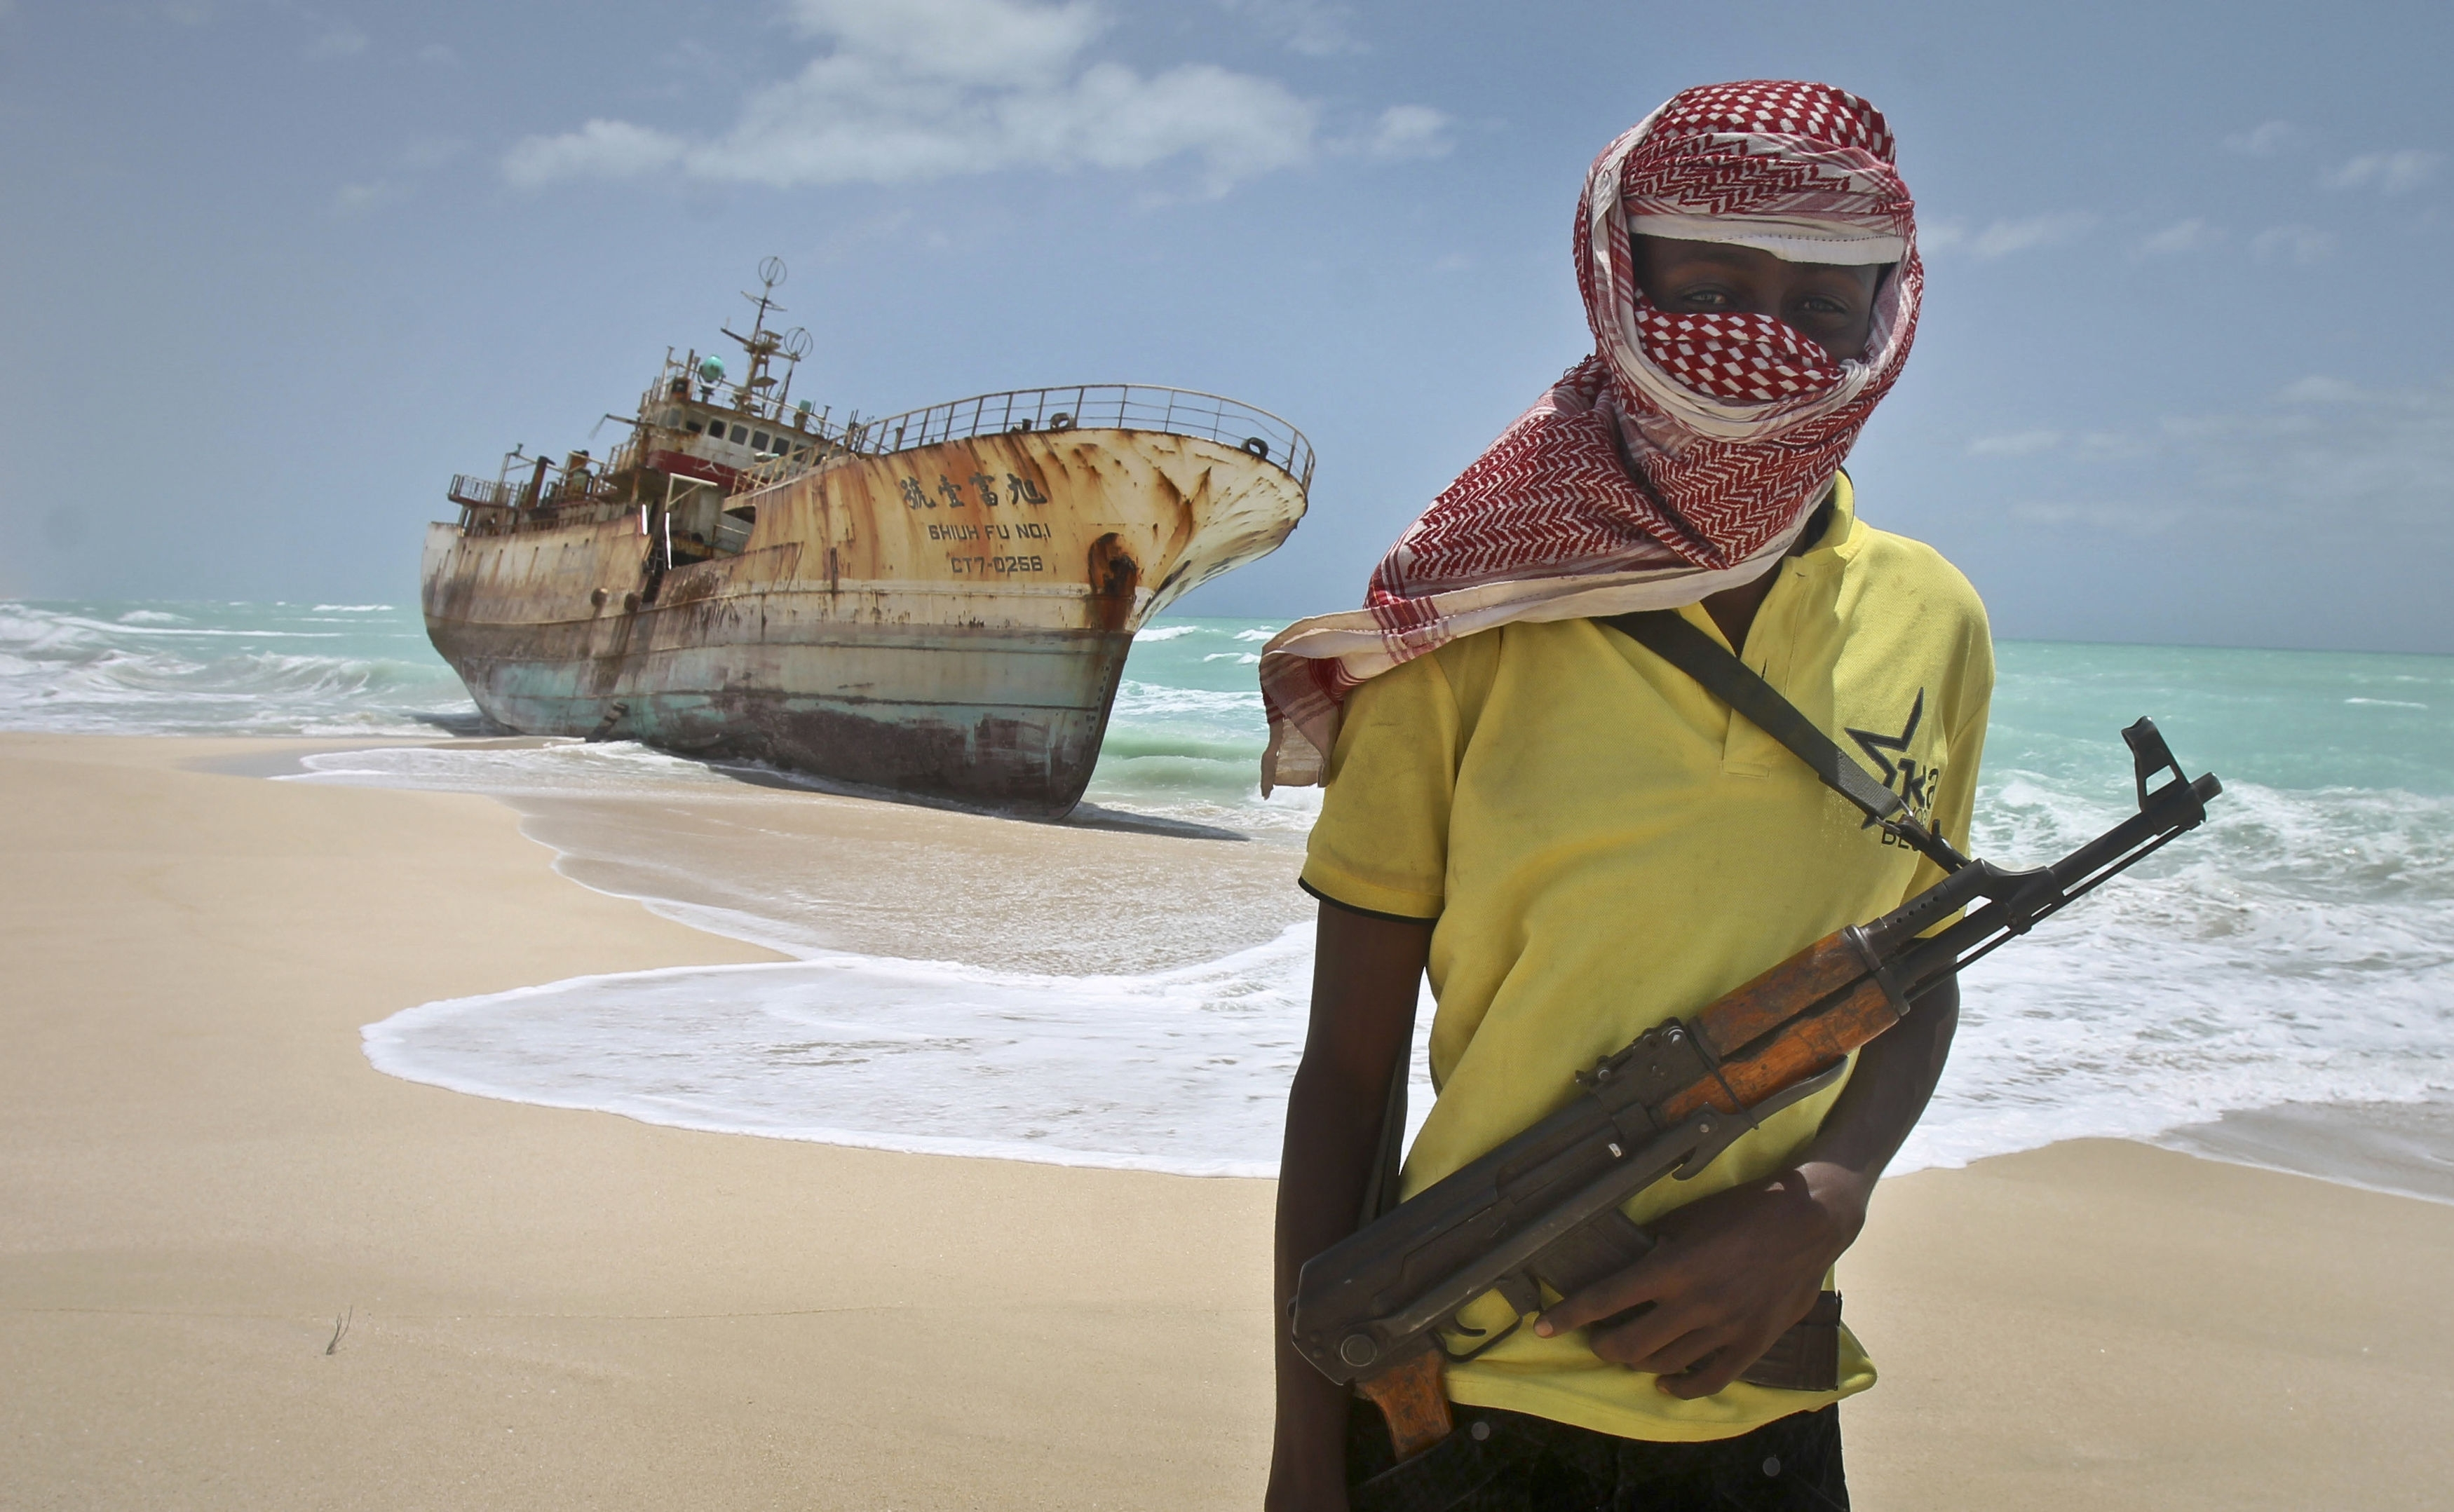 Pirates hijack oil tanker